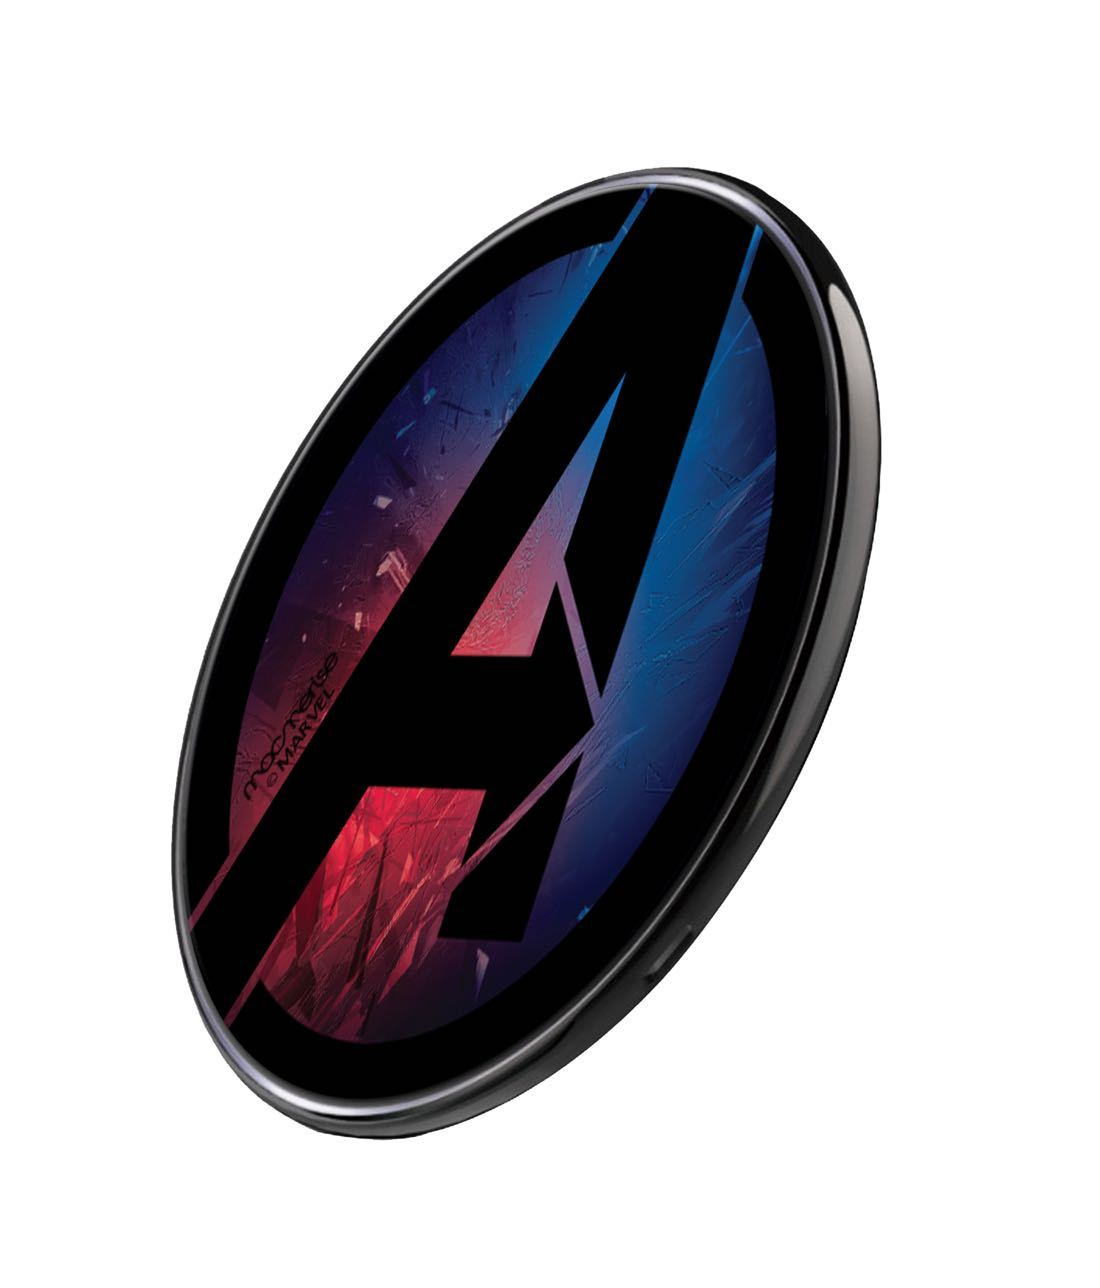 A For Avengers Wireless Charger by Macmerise